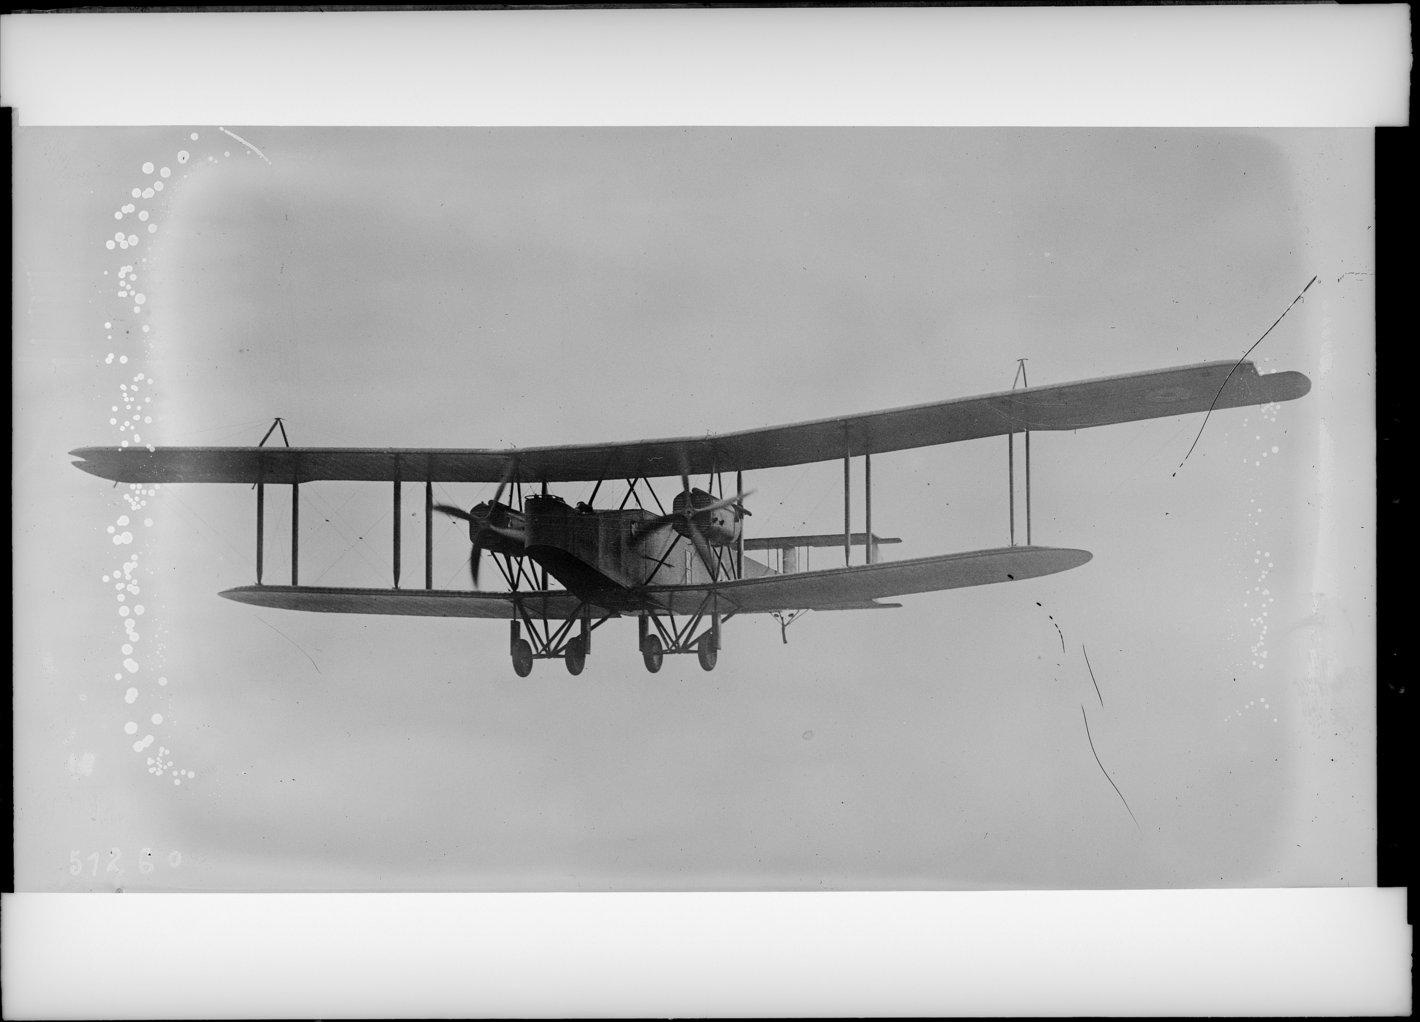 A British Handley Page 0/100 heavy bomber, first used operationally in 1917.